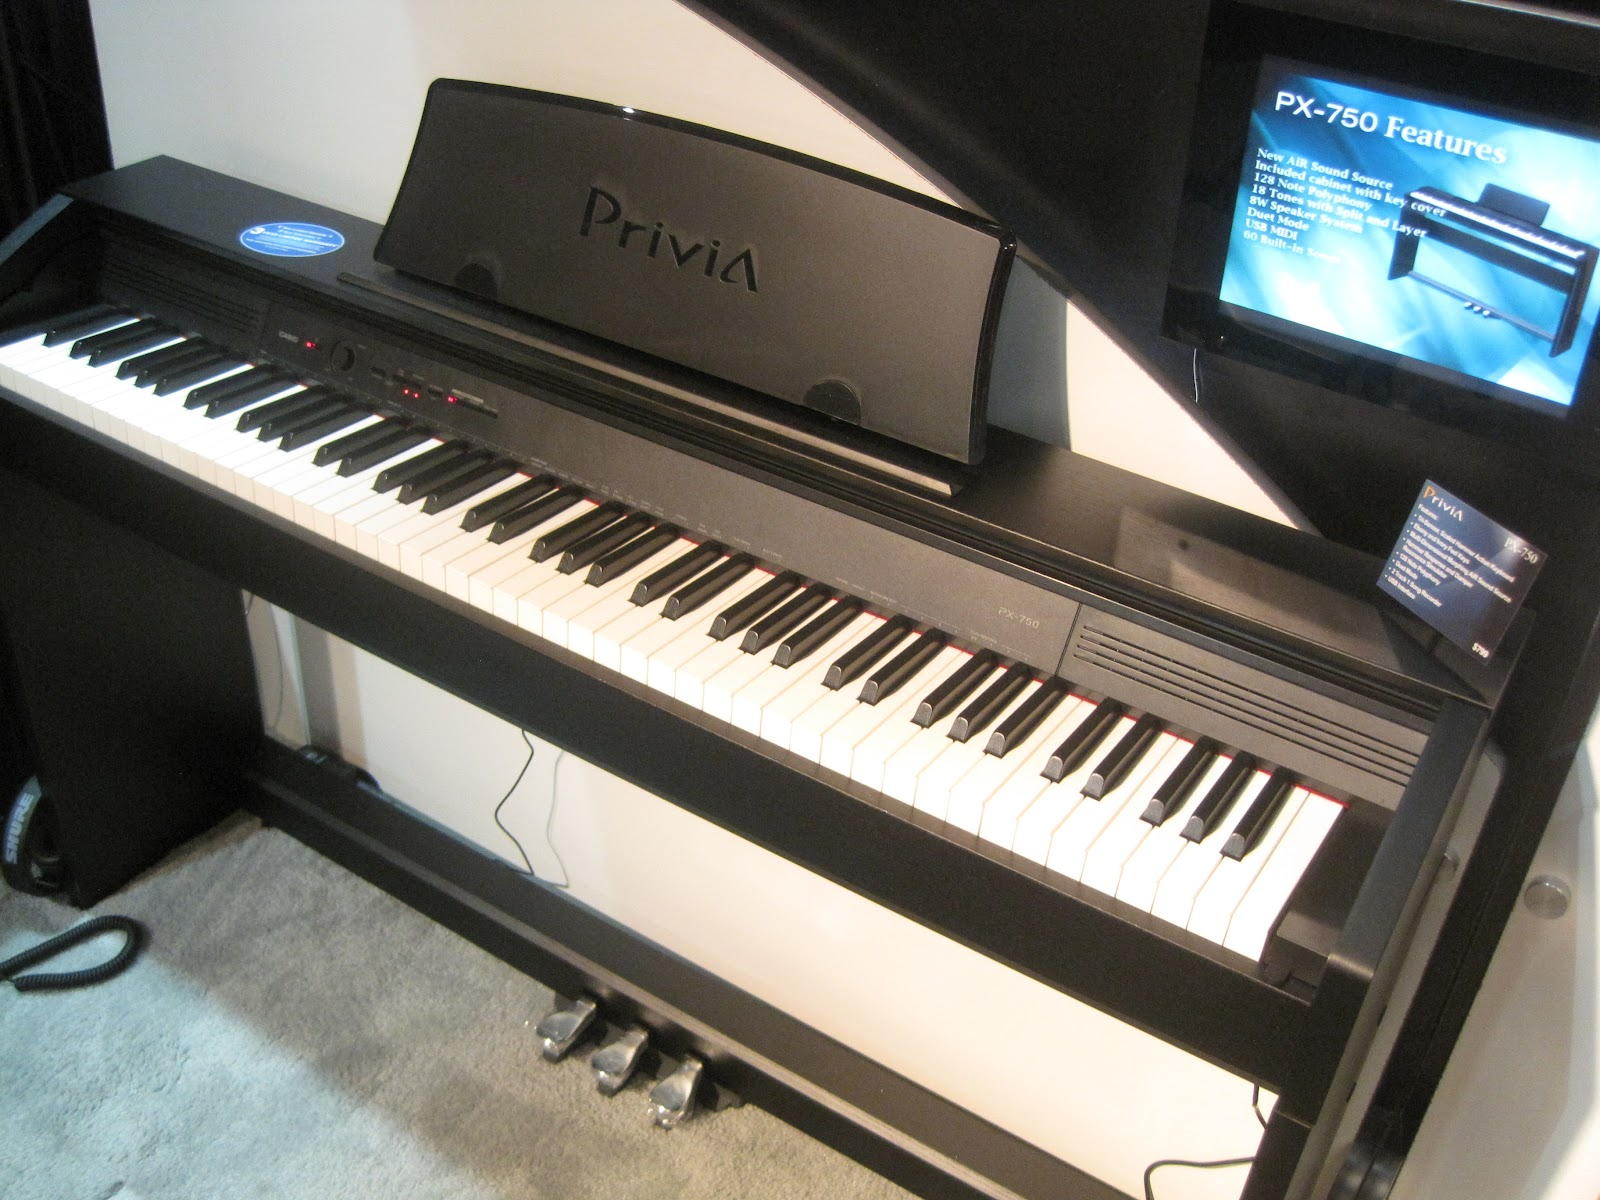 az piano reviews review casio px750 privia digital piano recommended new low priced piano. Black Bedroom Furniture Sets. Home Design Ideas